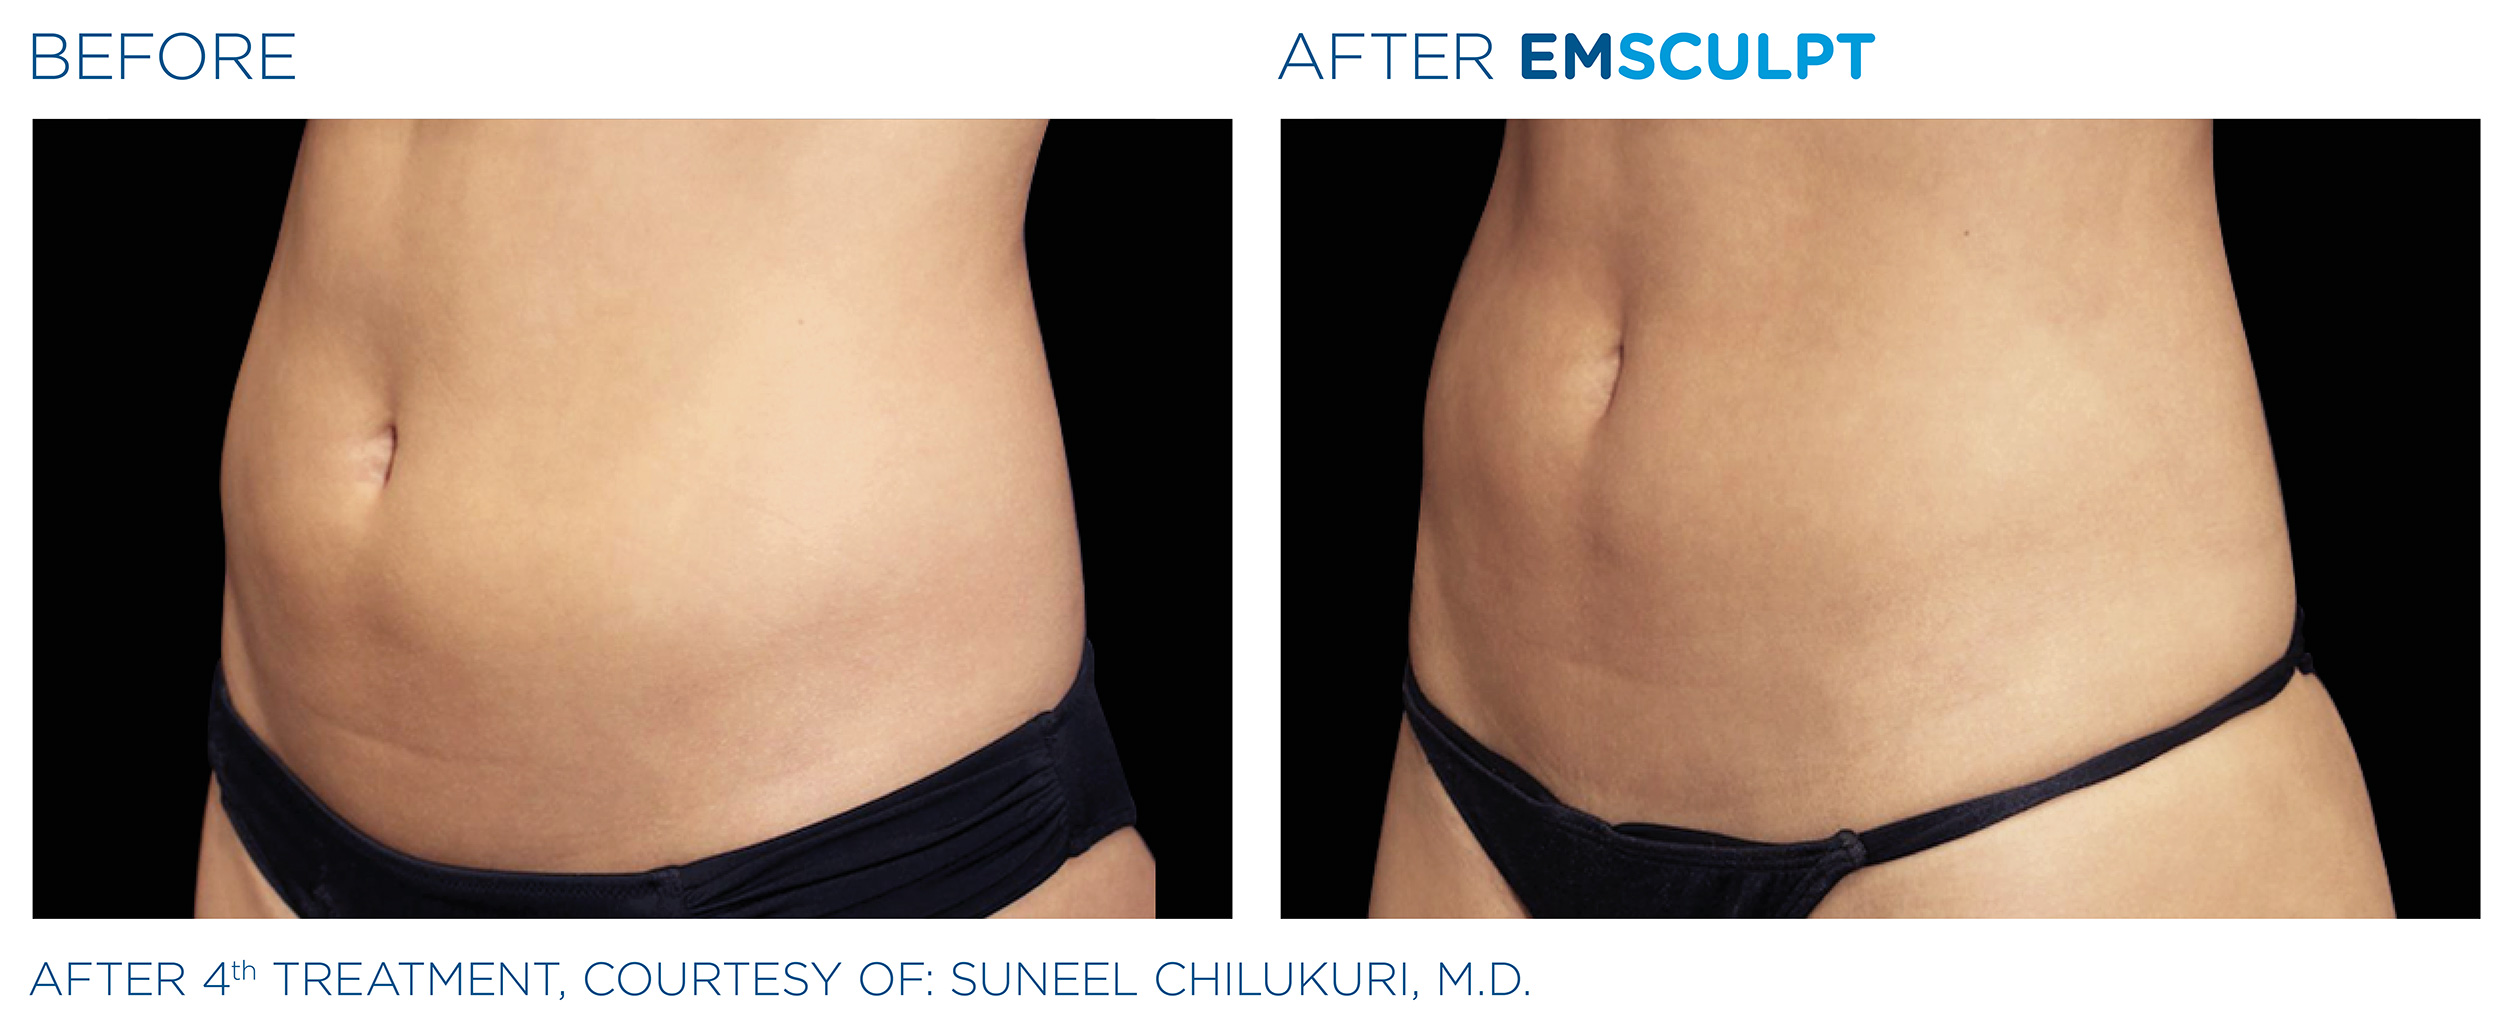 EMSCULPT Before & After Photos | Abdomen 6